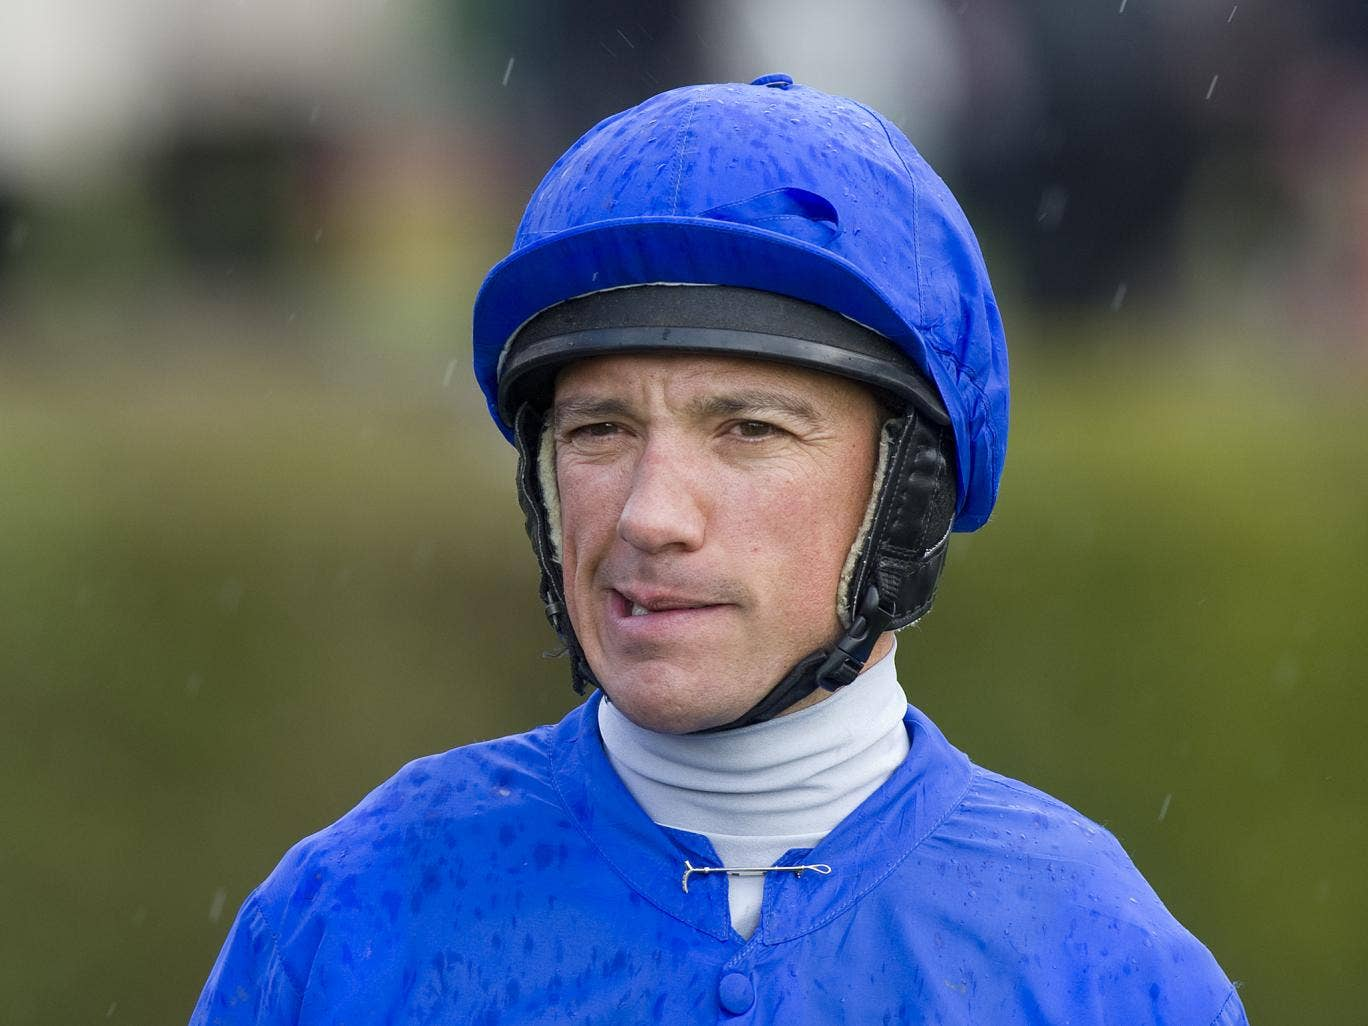 Dettorimade the headlines last month when his 18-year association with Godolphin came to an end, with the jockey planning to ride as a freelance in 2013